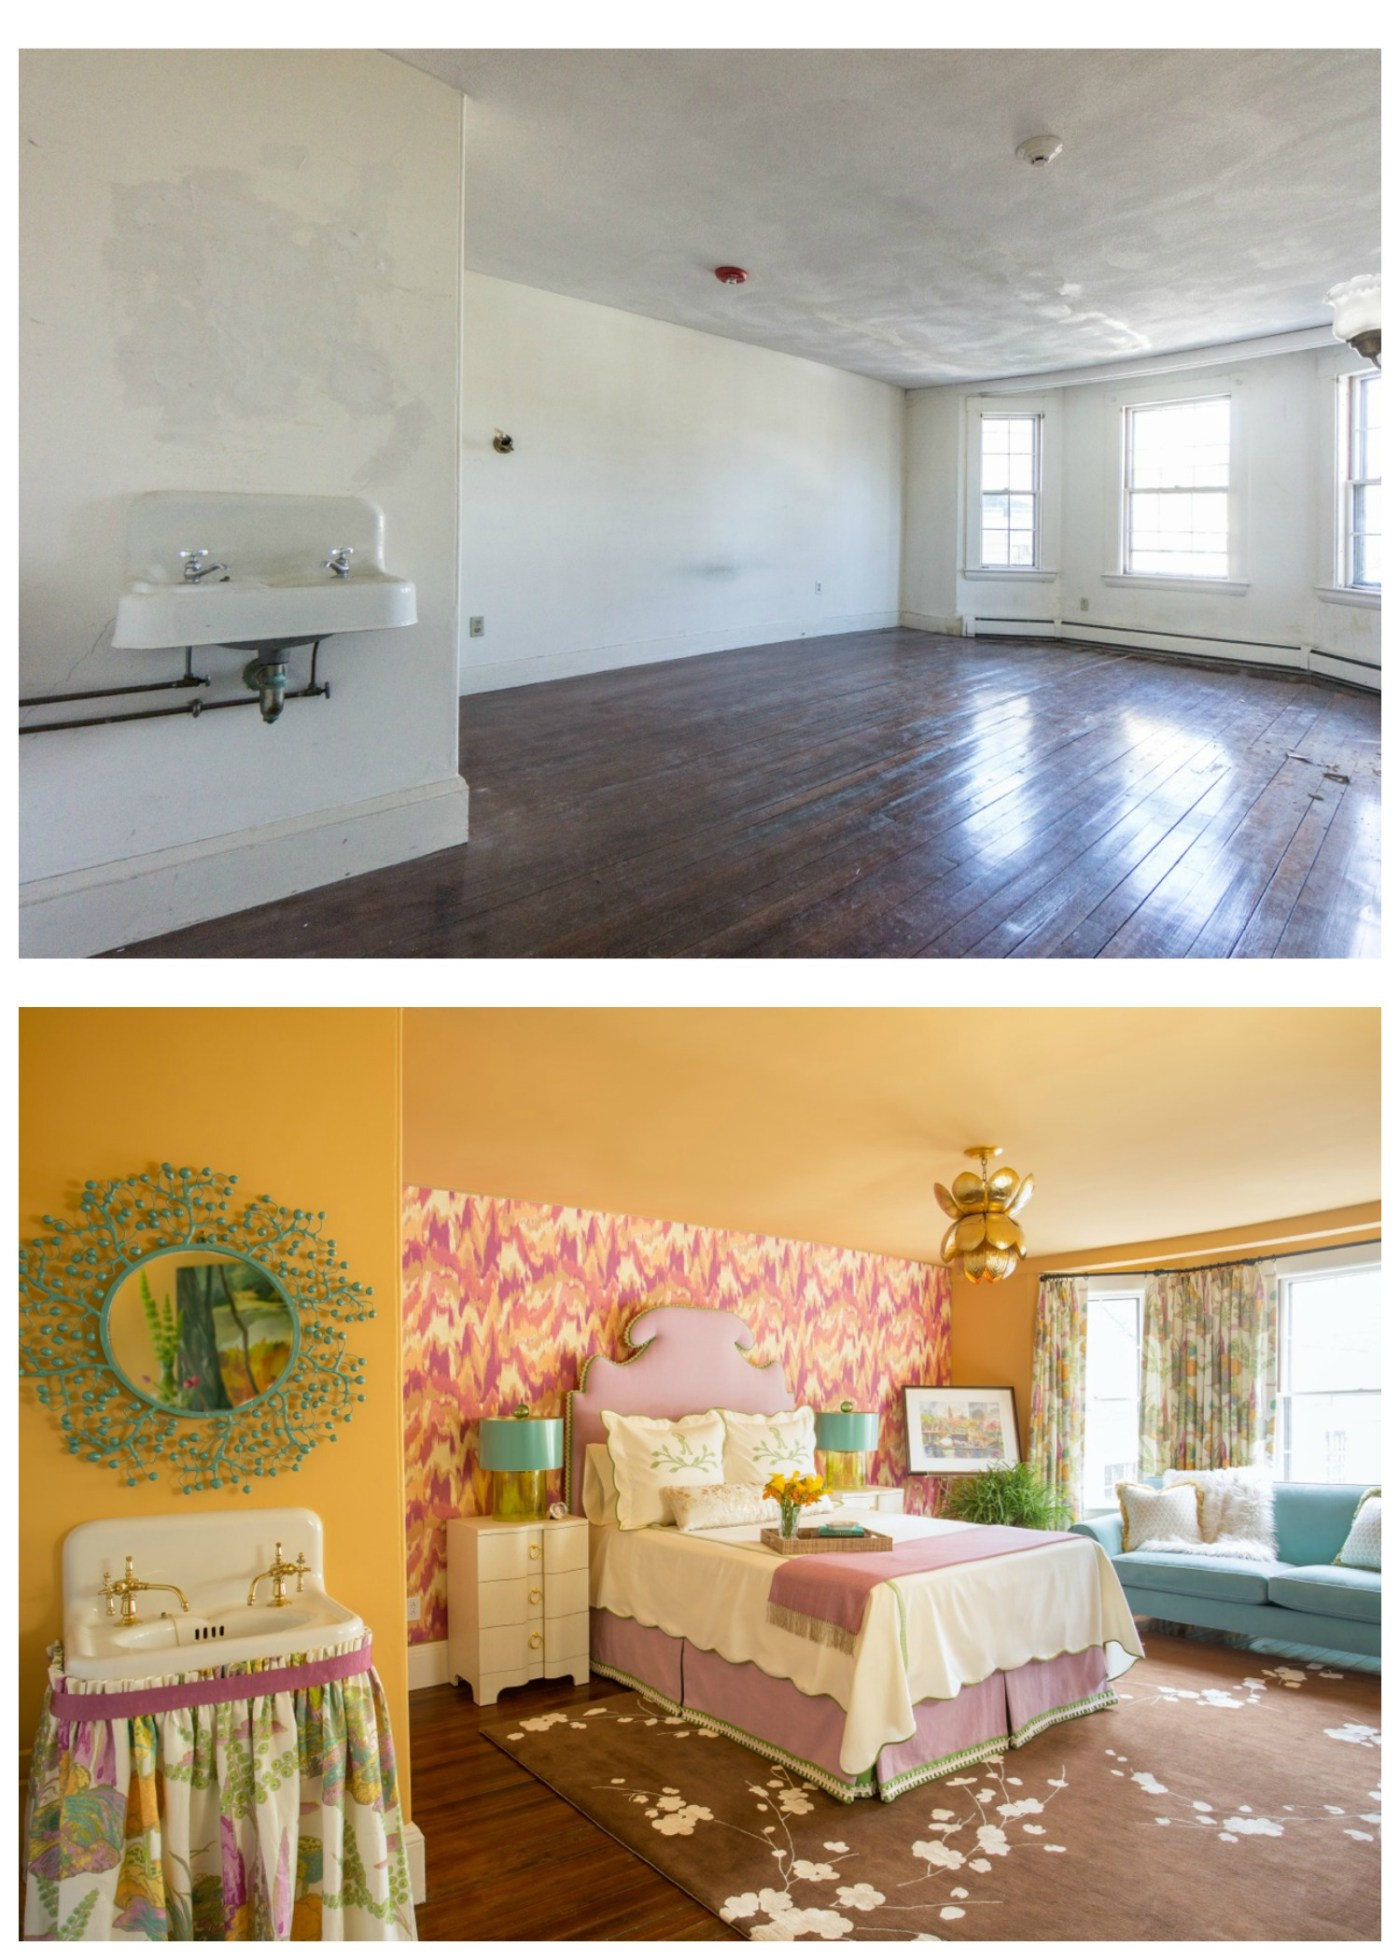 jlbshowhouse_beforeafter